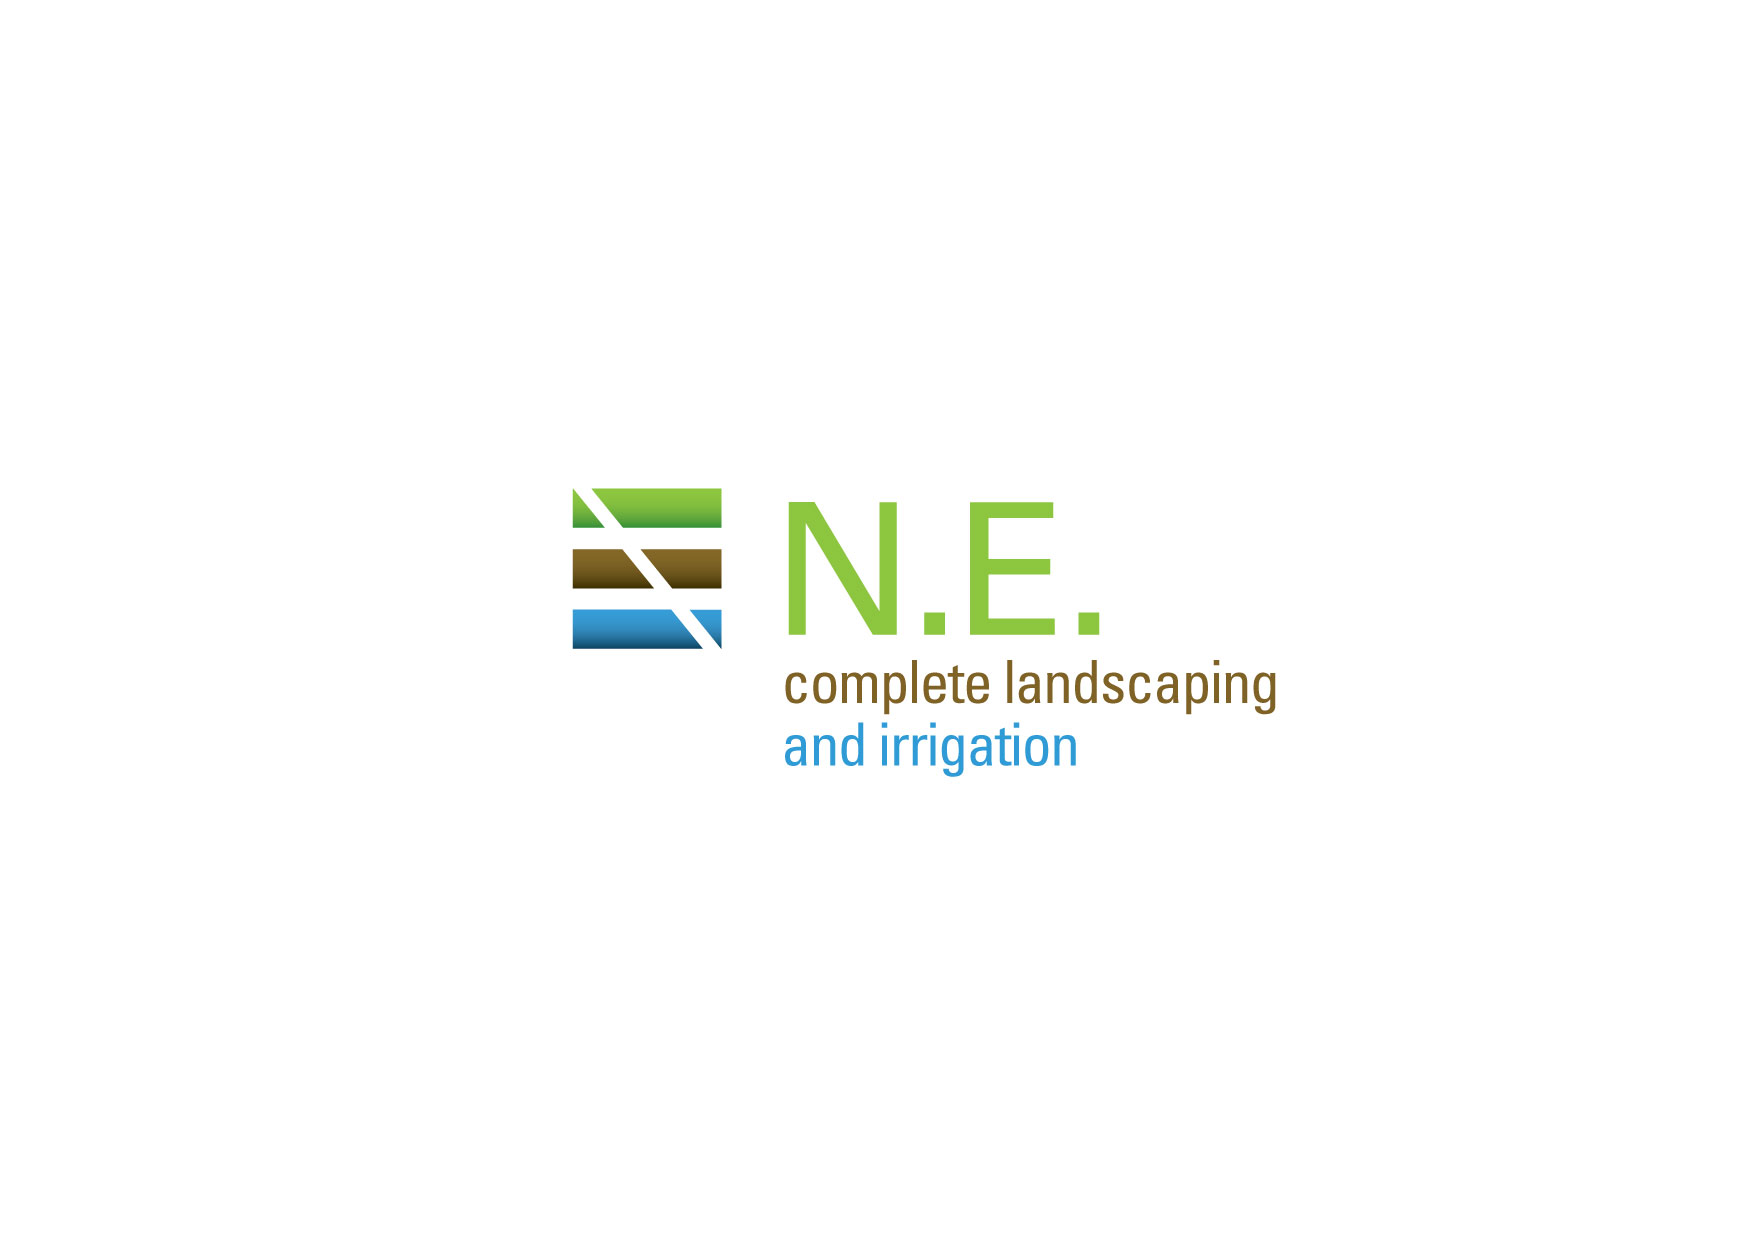 Logo Design by msdeejay - Entry No. 47 in the Logo Design Contest Fun Logo Design for ne complete landscaping and irrigation.